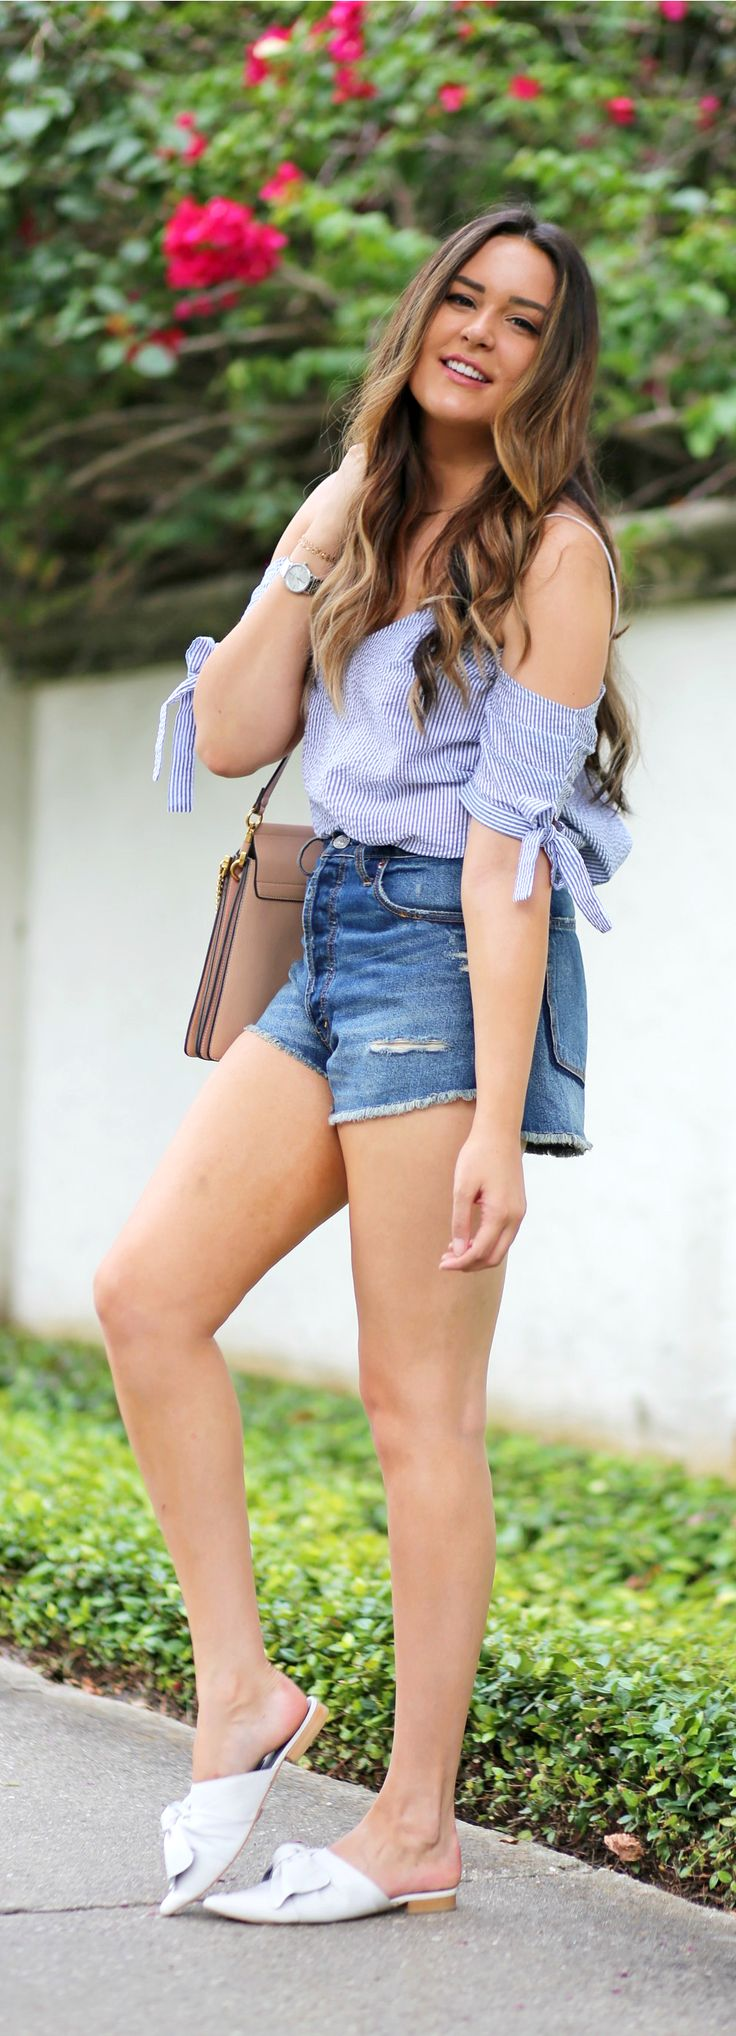 Adorable! | Fashion blogger Mash Elle styles a blue striped seersucker off the shoulder top from Urban Outfitters  with high waisted cut off ripped jeans short from Abercrombie and Fitch shorts, Michael Hill watch, and Chloe Faye purse.